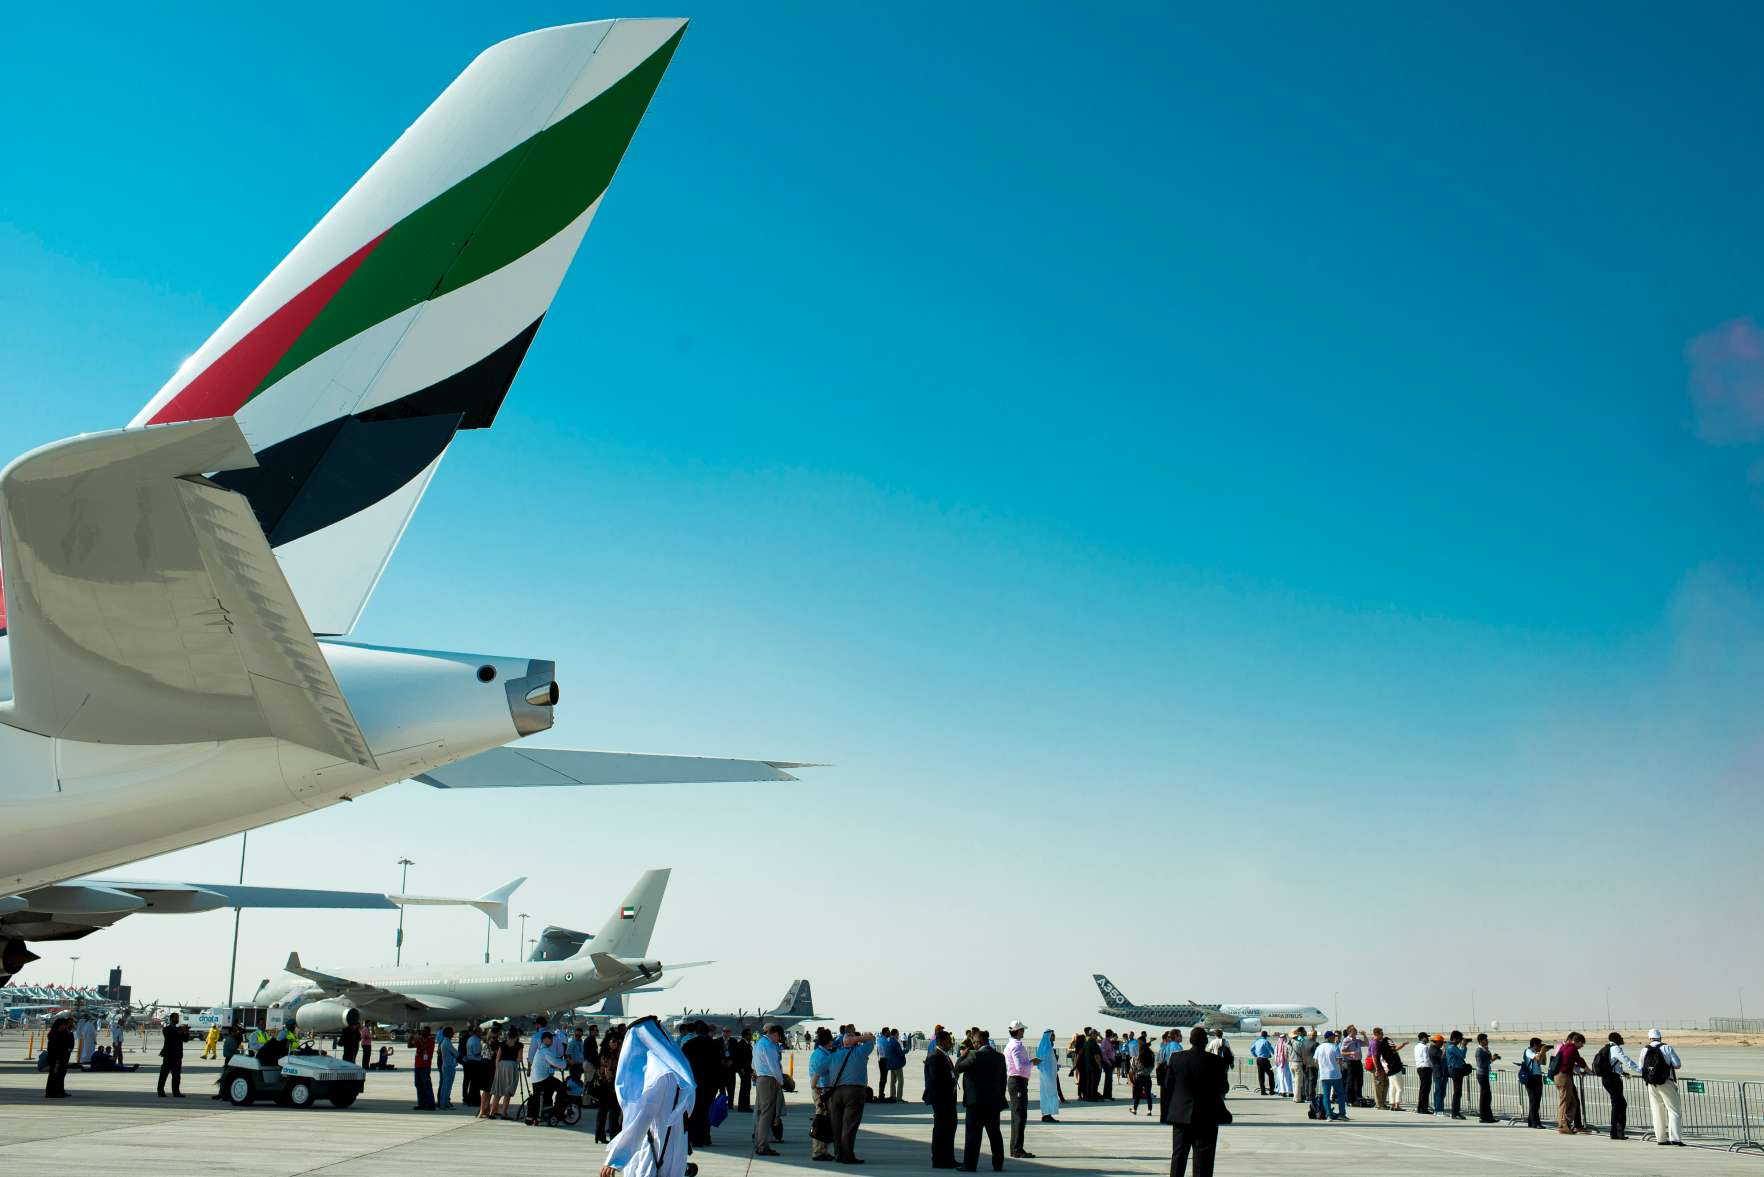 An Airbus A380-800, manufactured by Airbus SAS and operated by Emirates is displayed during the 2015 Dubai Airshow on November 9, 2015 in Dubai, United Arab Emirates.